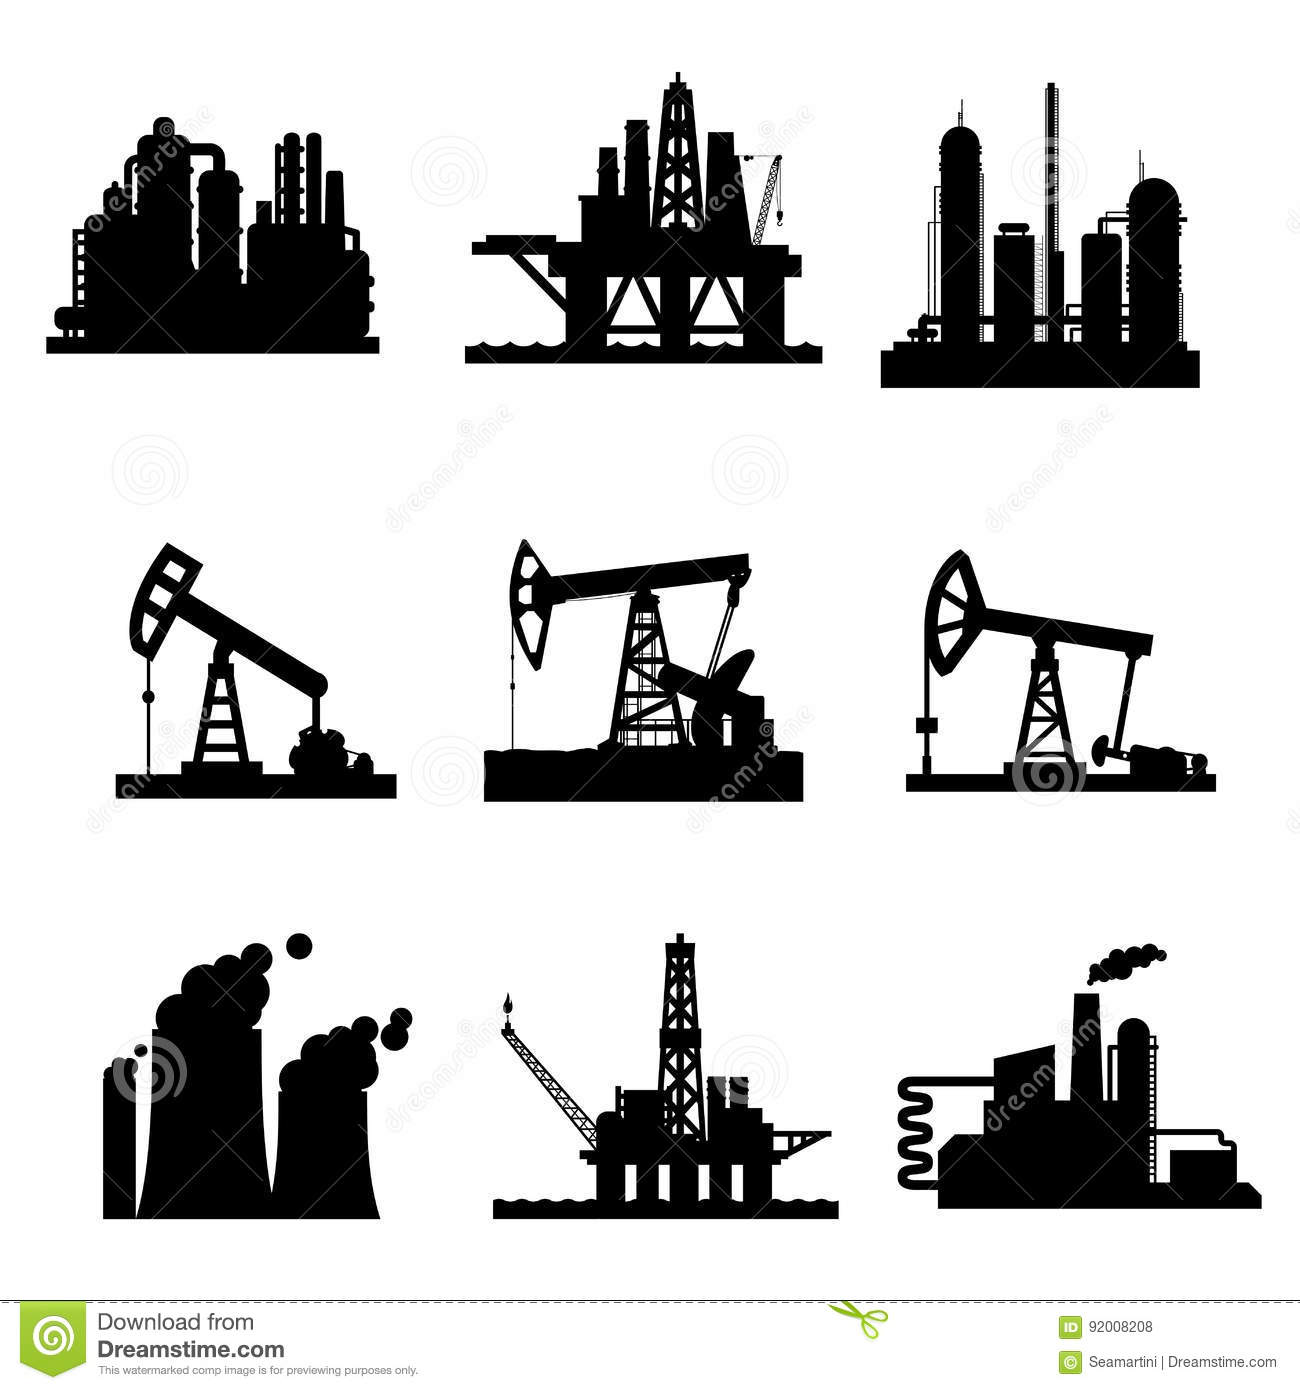 vector icons of oil derricks and gas mining plants stock